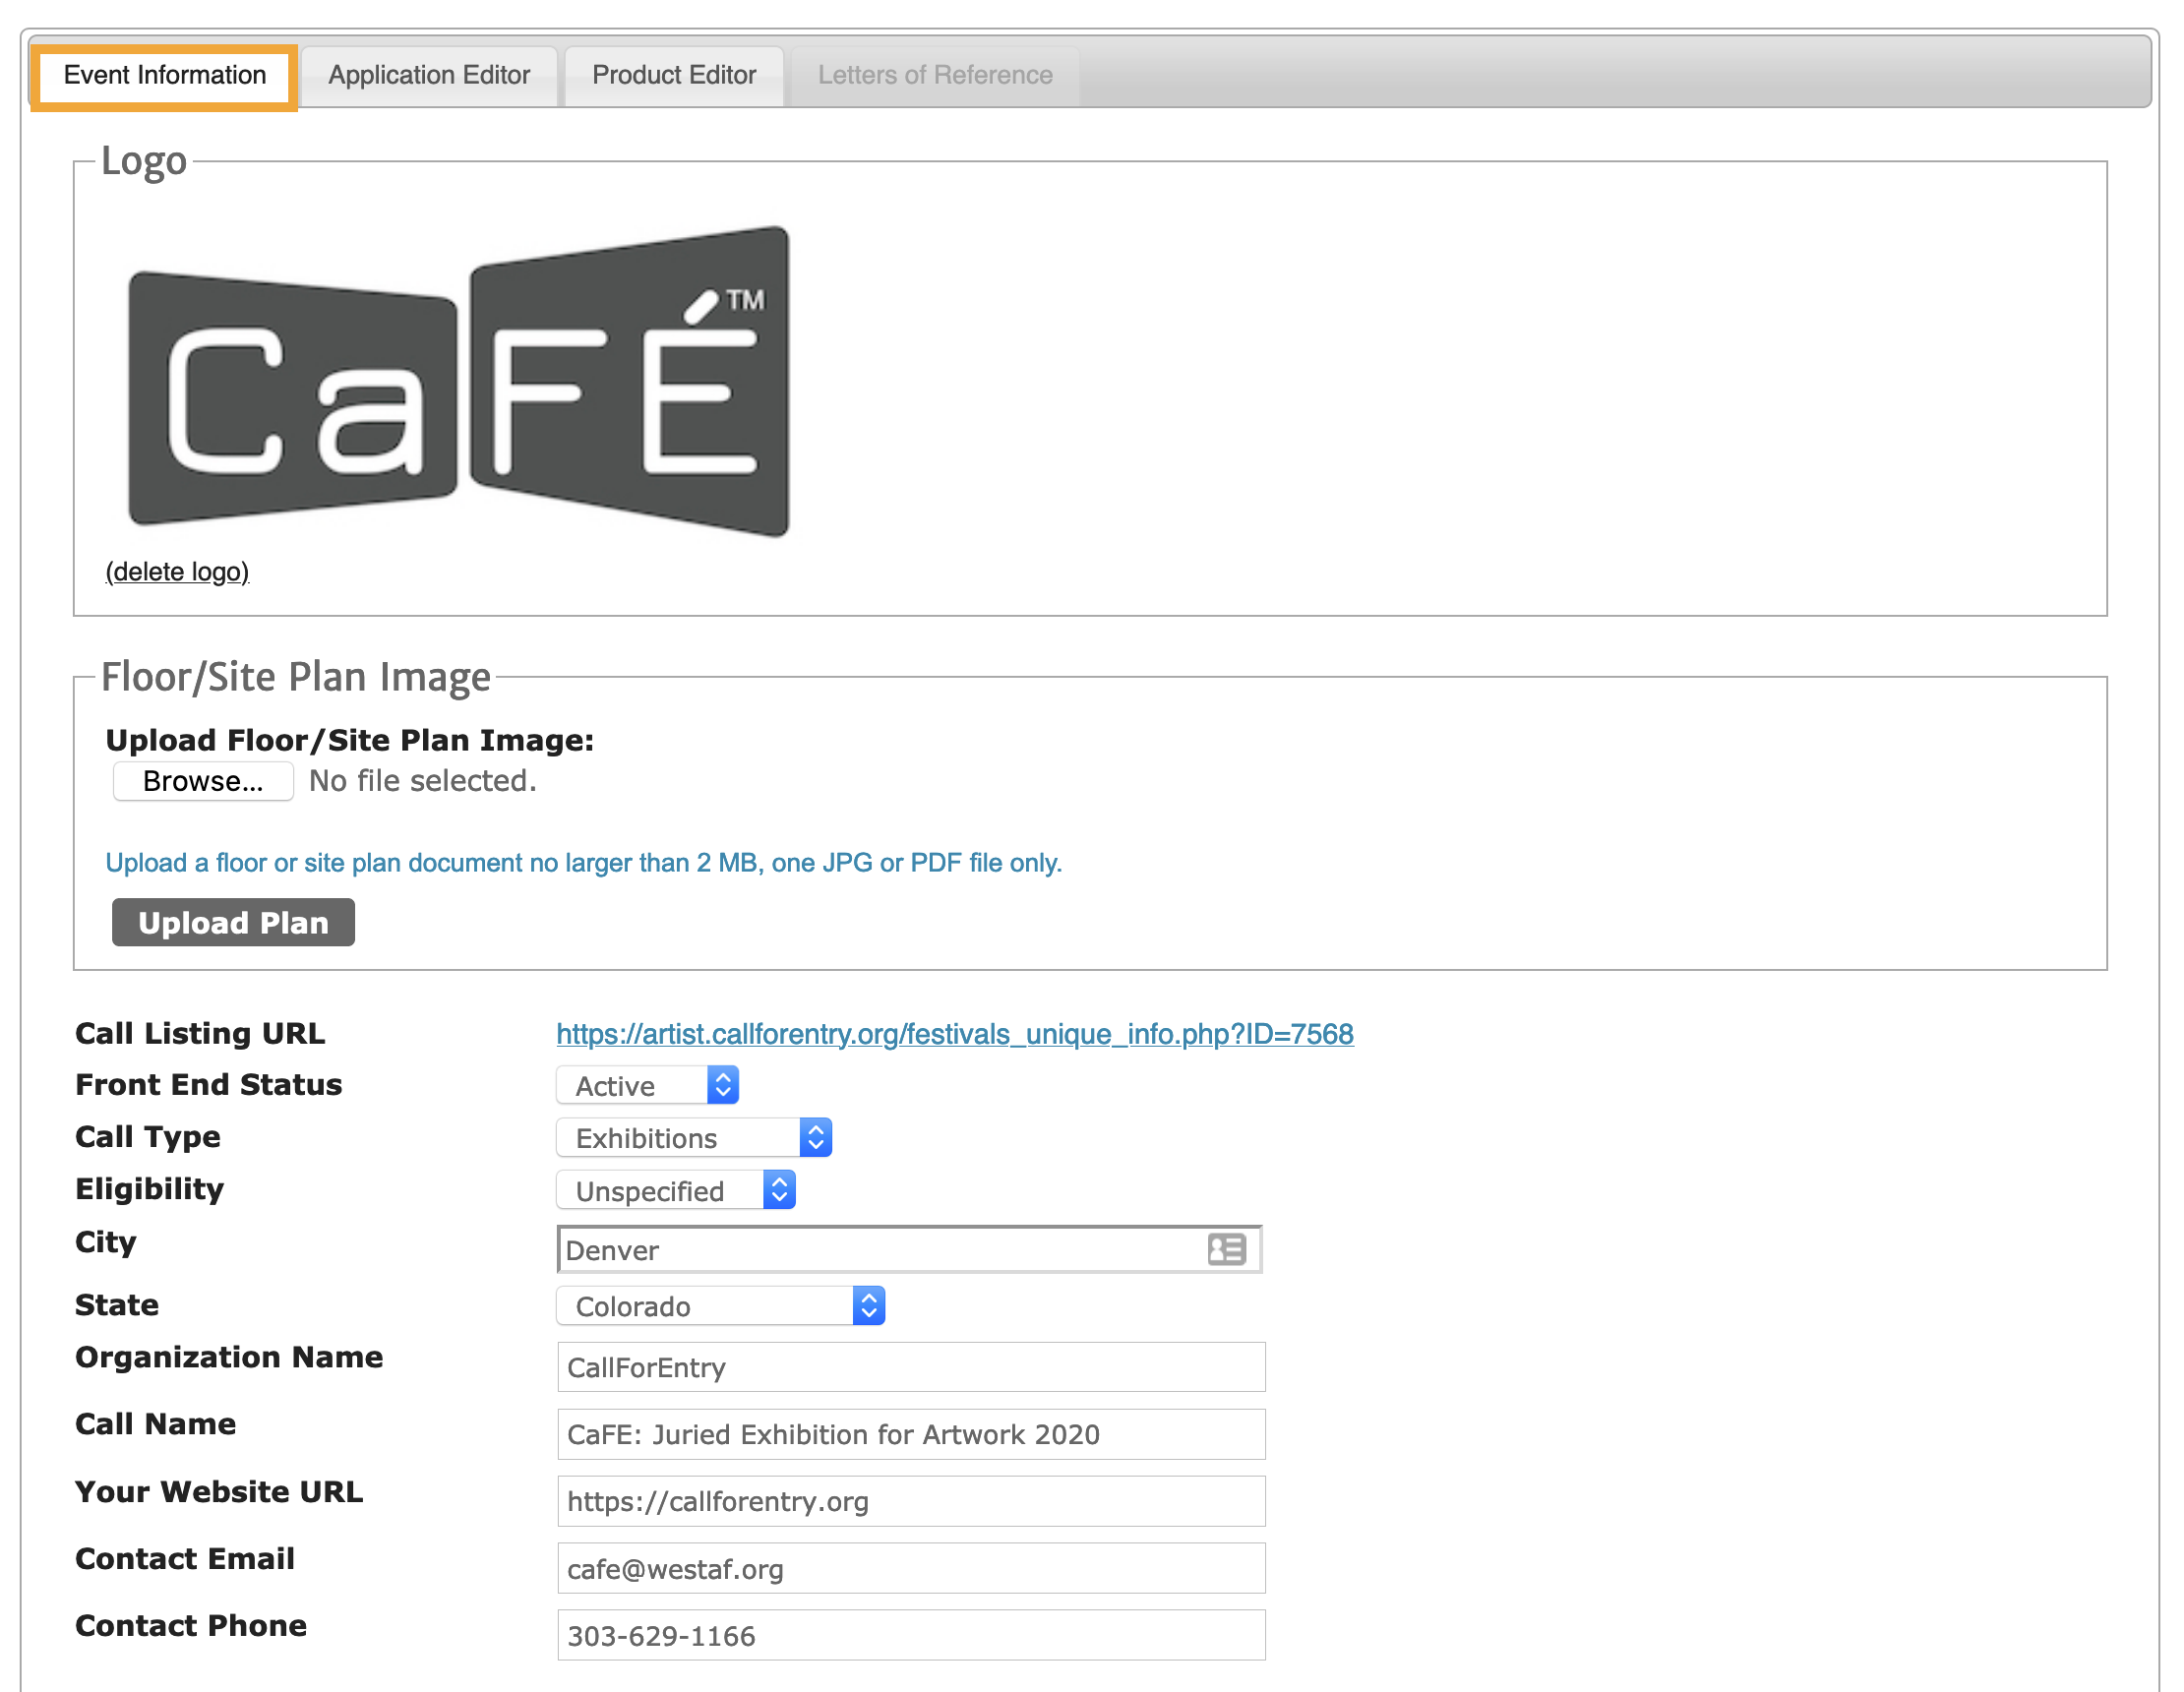 Screenshot of the Call Editor on the Event Information page highlighting the main contact fields, logo area and site plan.